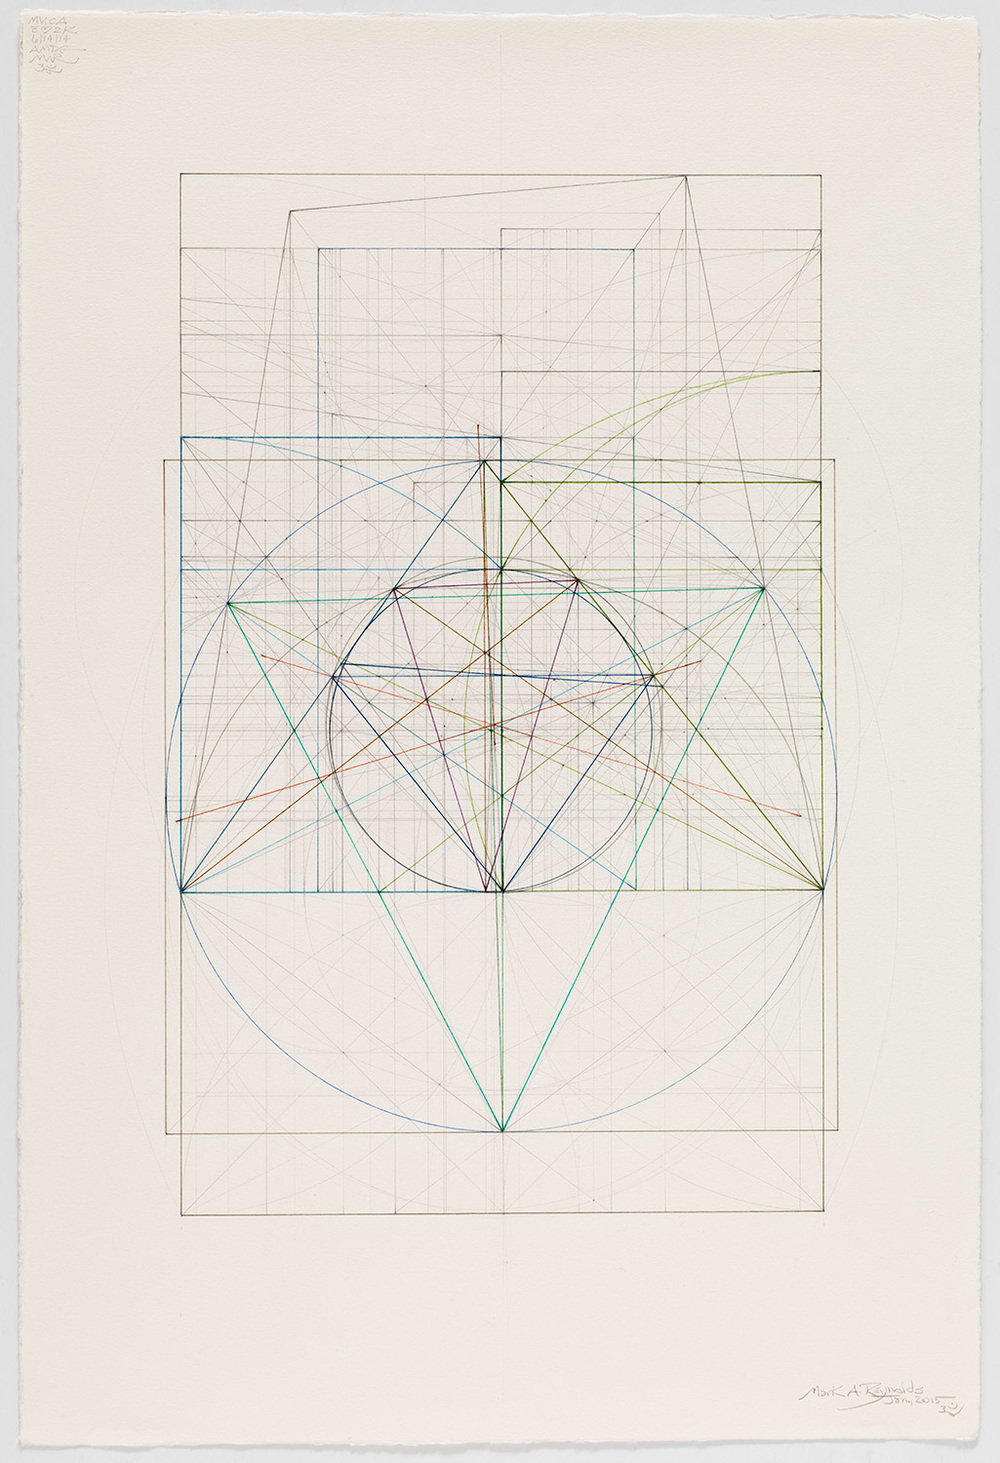 Marriage of Incommensurables Series: Sq Rt Phi and Sq Rt Two with the Nine Point Circle, 1.15    ,  2015  16.1875 in. x 12.375 in. (Sheet size: 22 in. x 15 in.) Graphite and colored inks on cotton paper